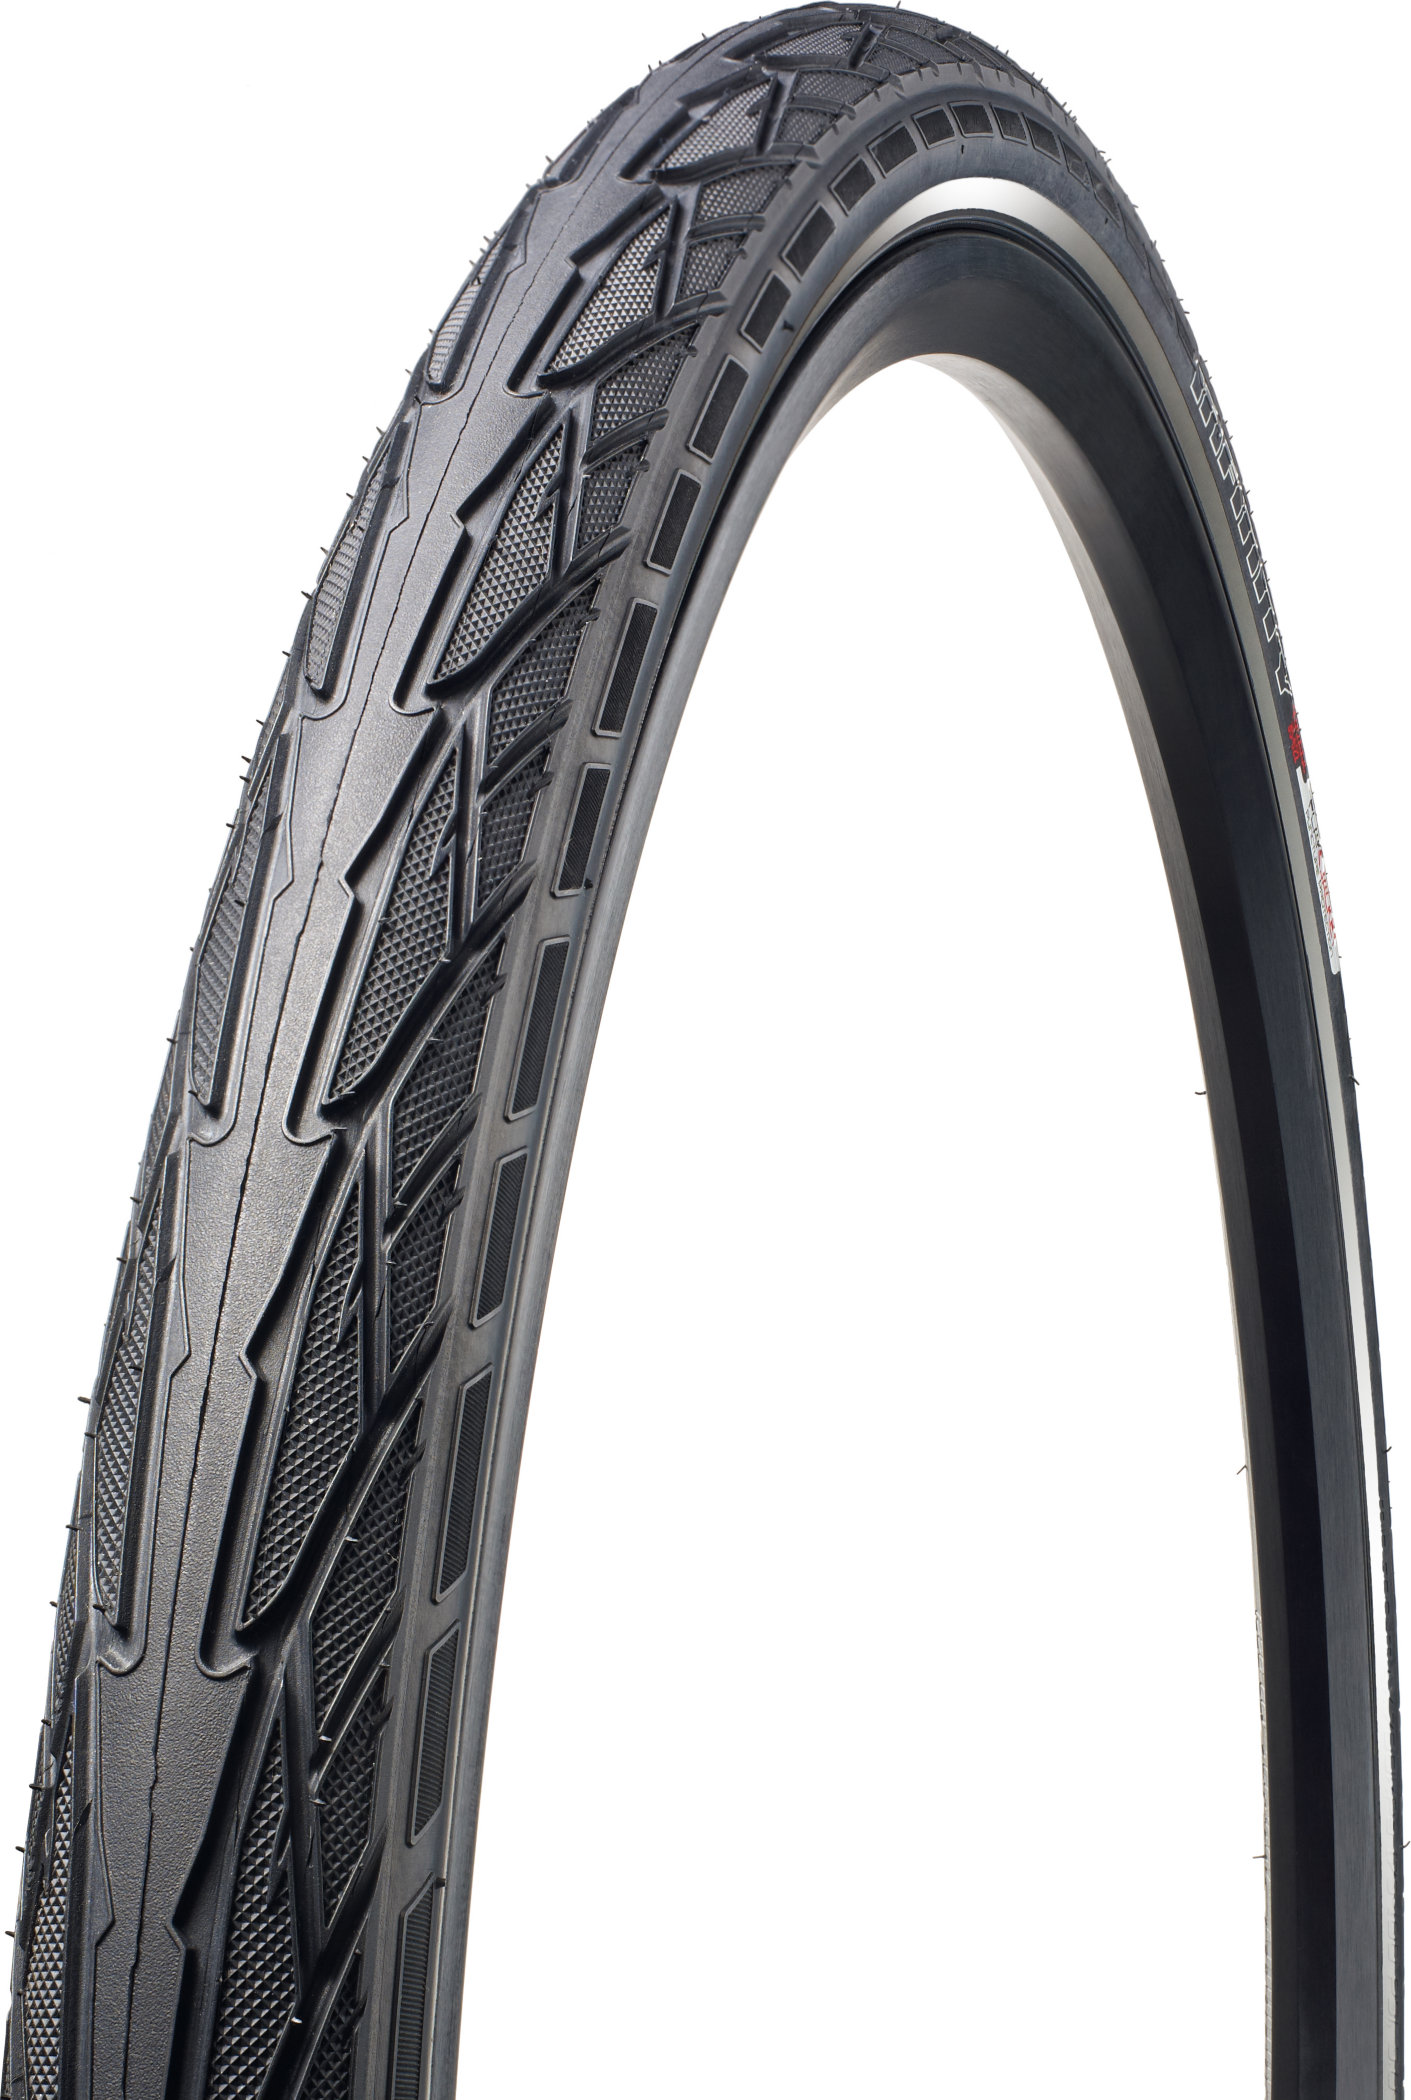 SPECIALIZED INFINITY ARM REFLECT TIRE 700X32C - SPECIALIZED INFINITY ARM REFLECT TIRE 700X32C